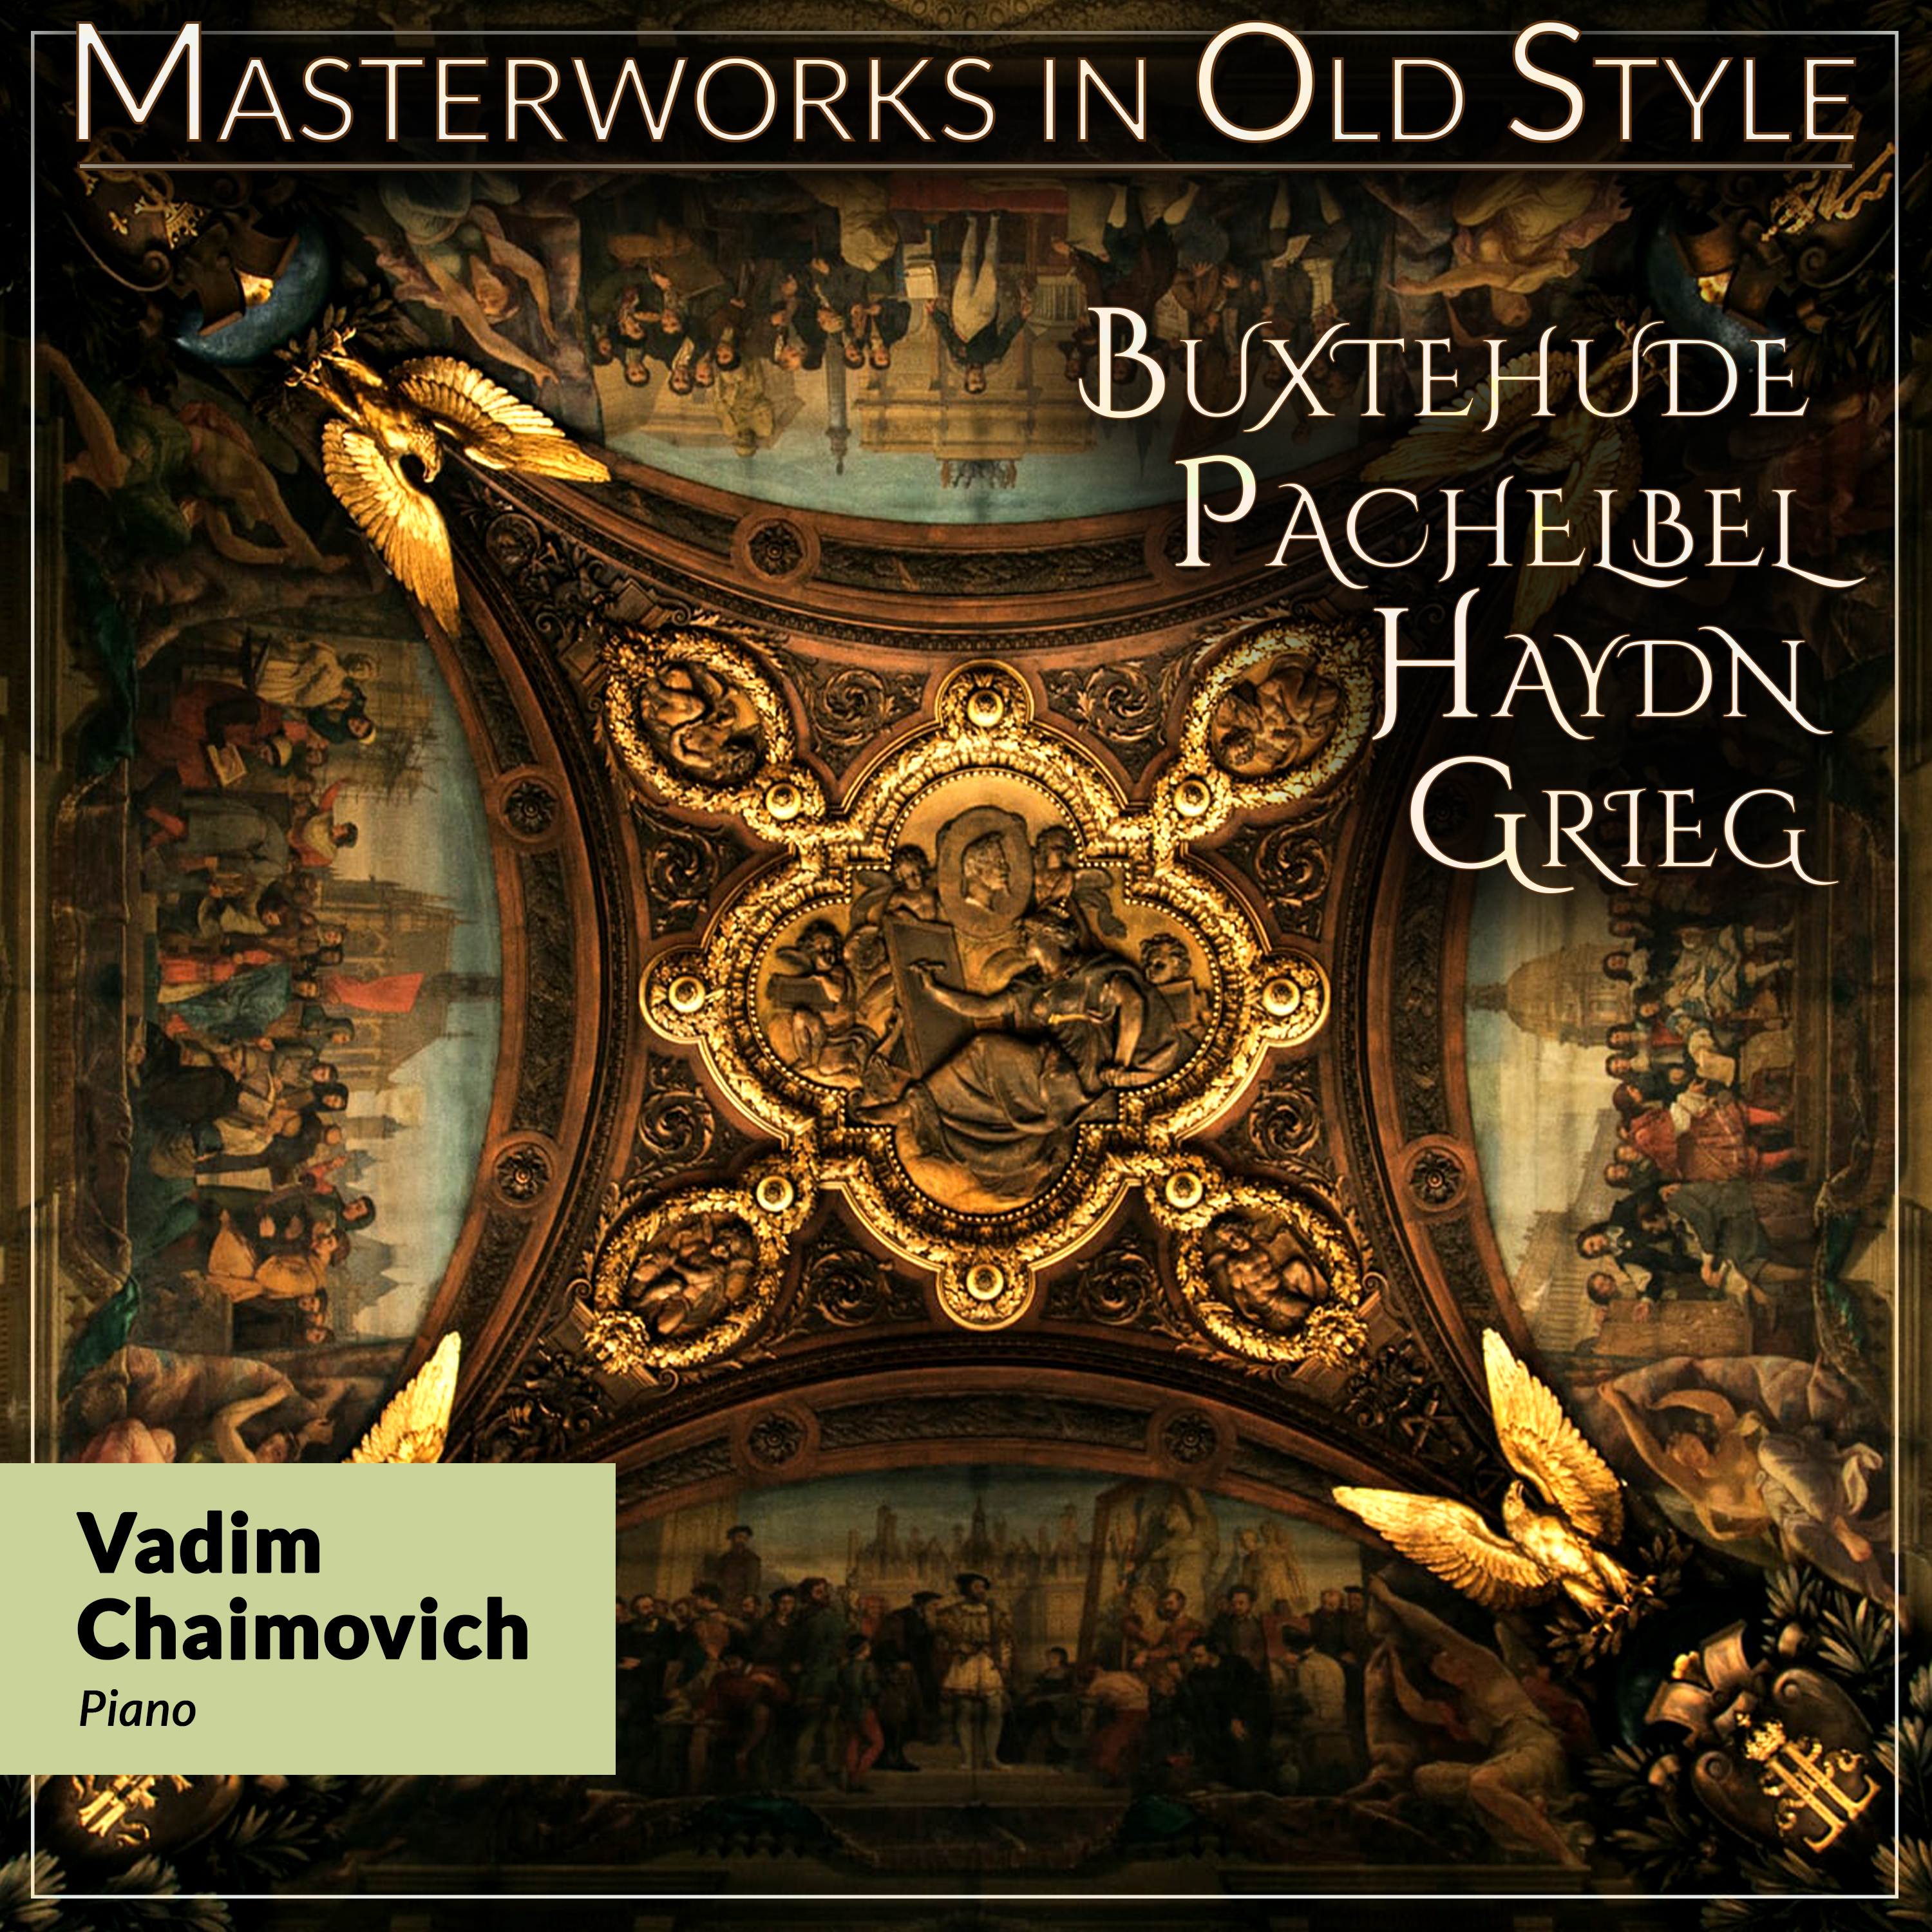 Masterworks in Old Style: Buxtehude, Pachelbel, Haydn, Grieg